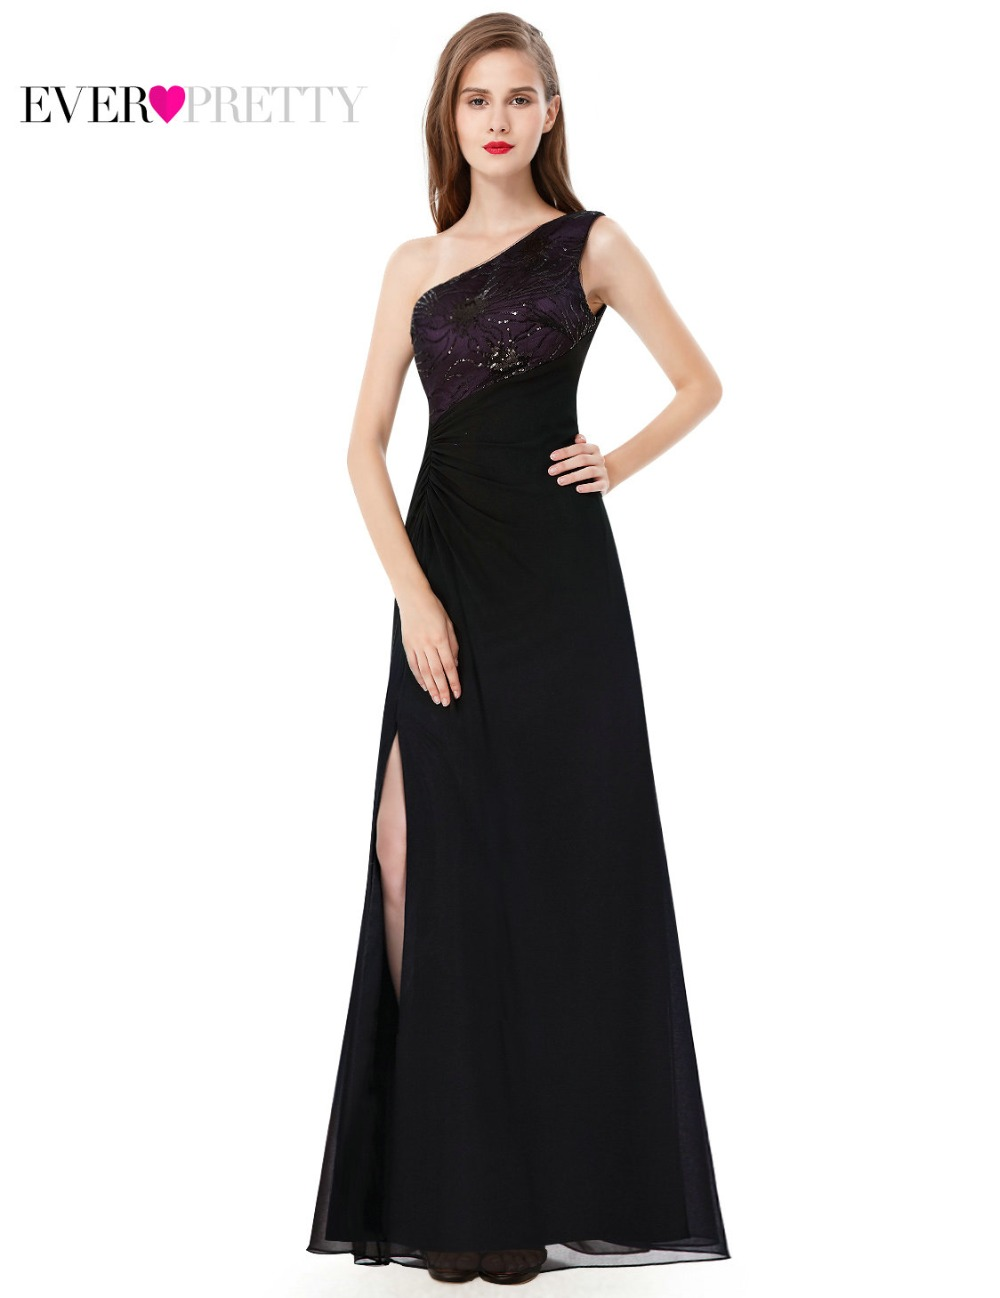 Sequined Chiffon Prom Dress Ever Pretty HE08590 Elegant Black One Shoulder Floor Length Long Prom Gown Dresses(China (Mainland))